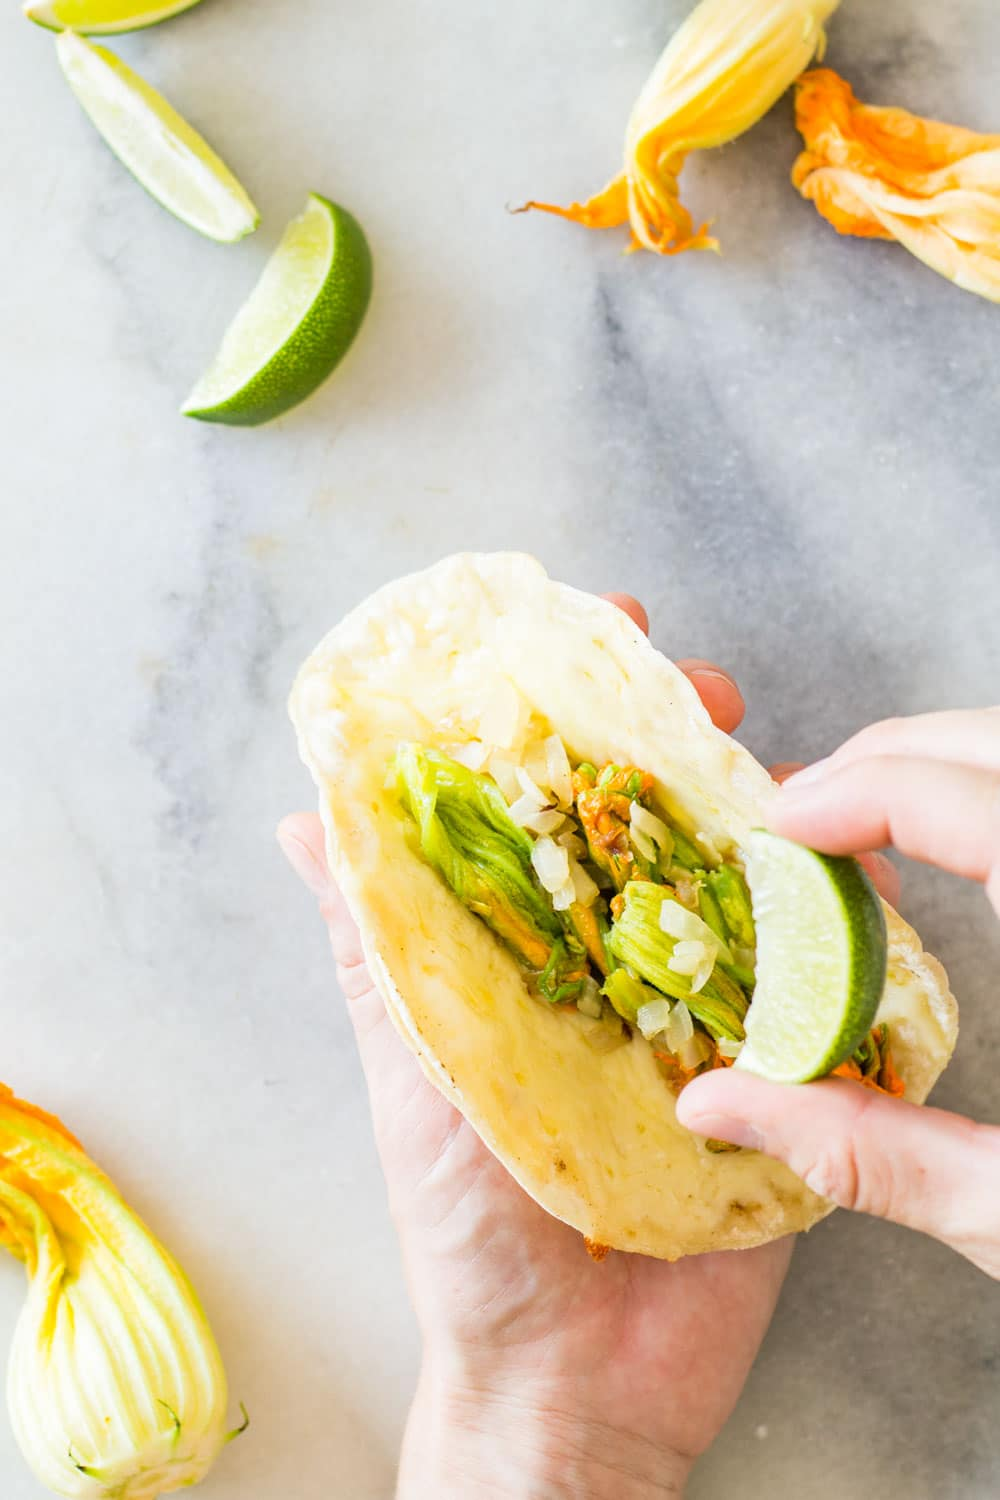 Hand holding a Squash Blossom Quesadilla and squeezing a lime on it.